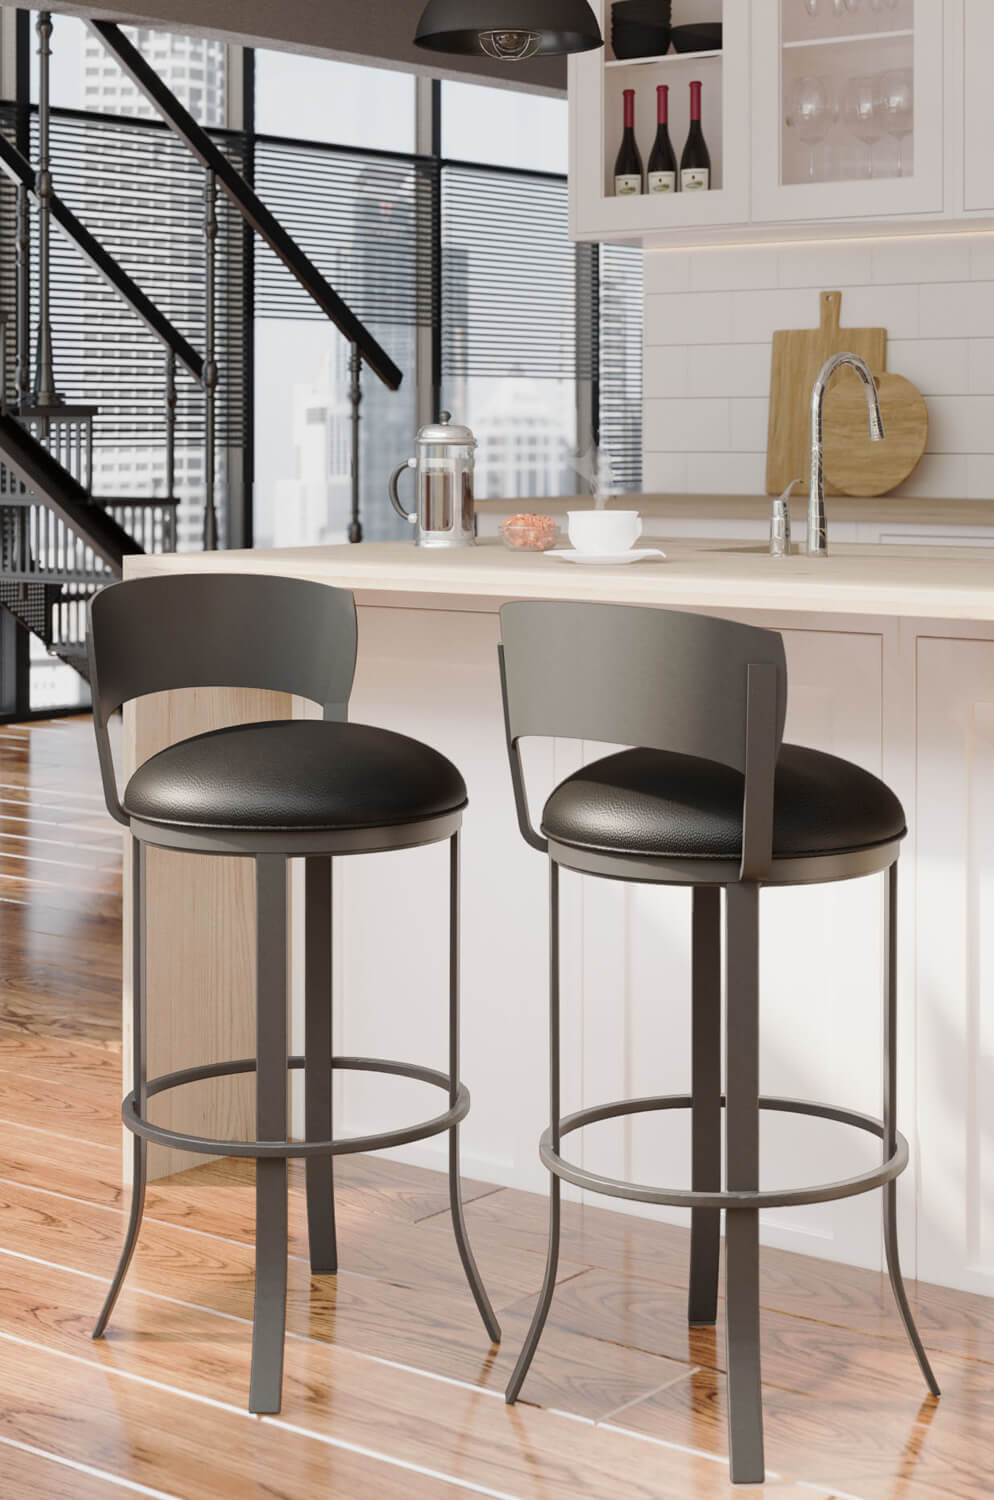 Buy Callee S Bailey Black Modern Swivel Bar Stool Free